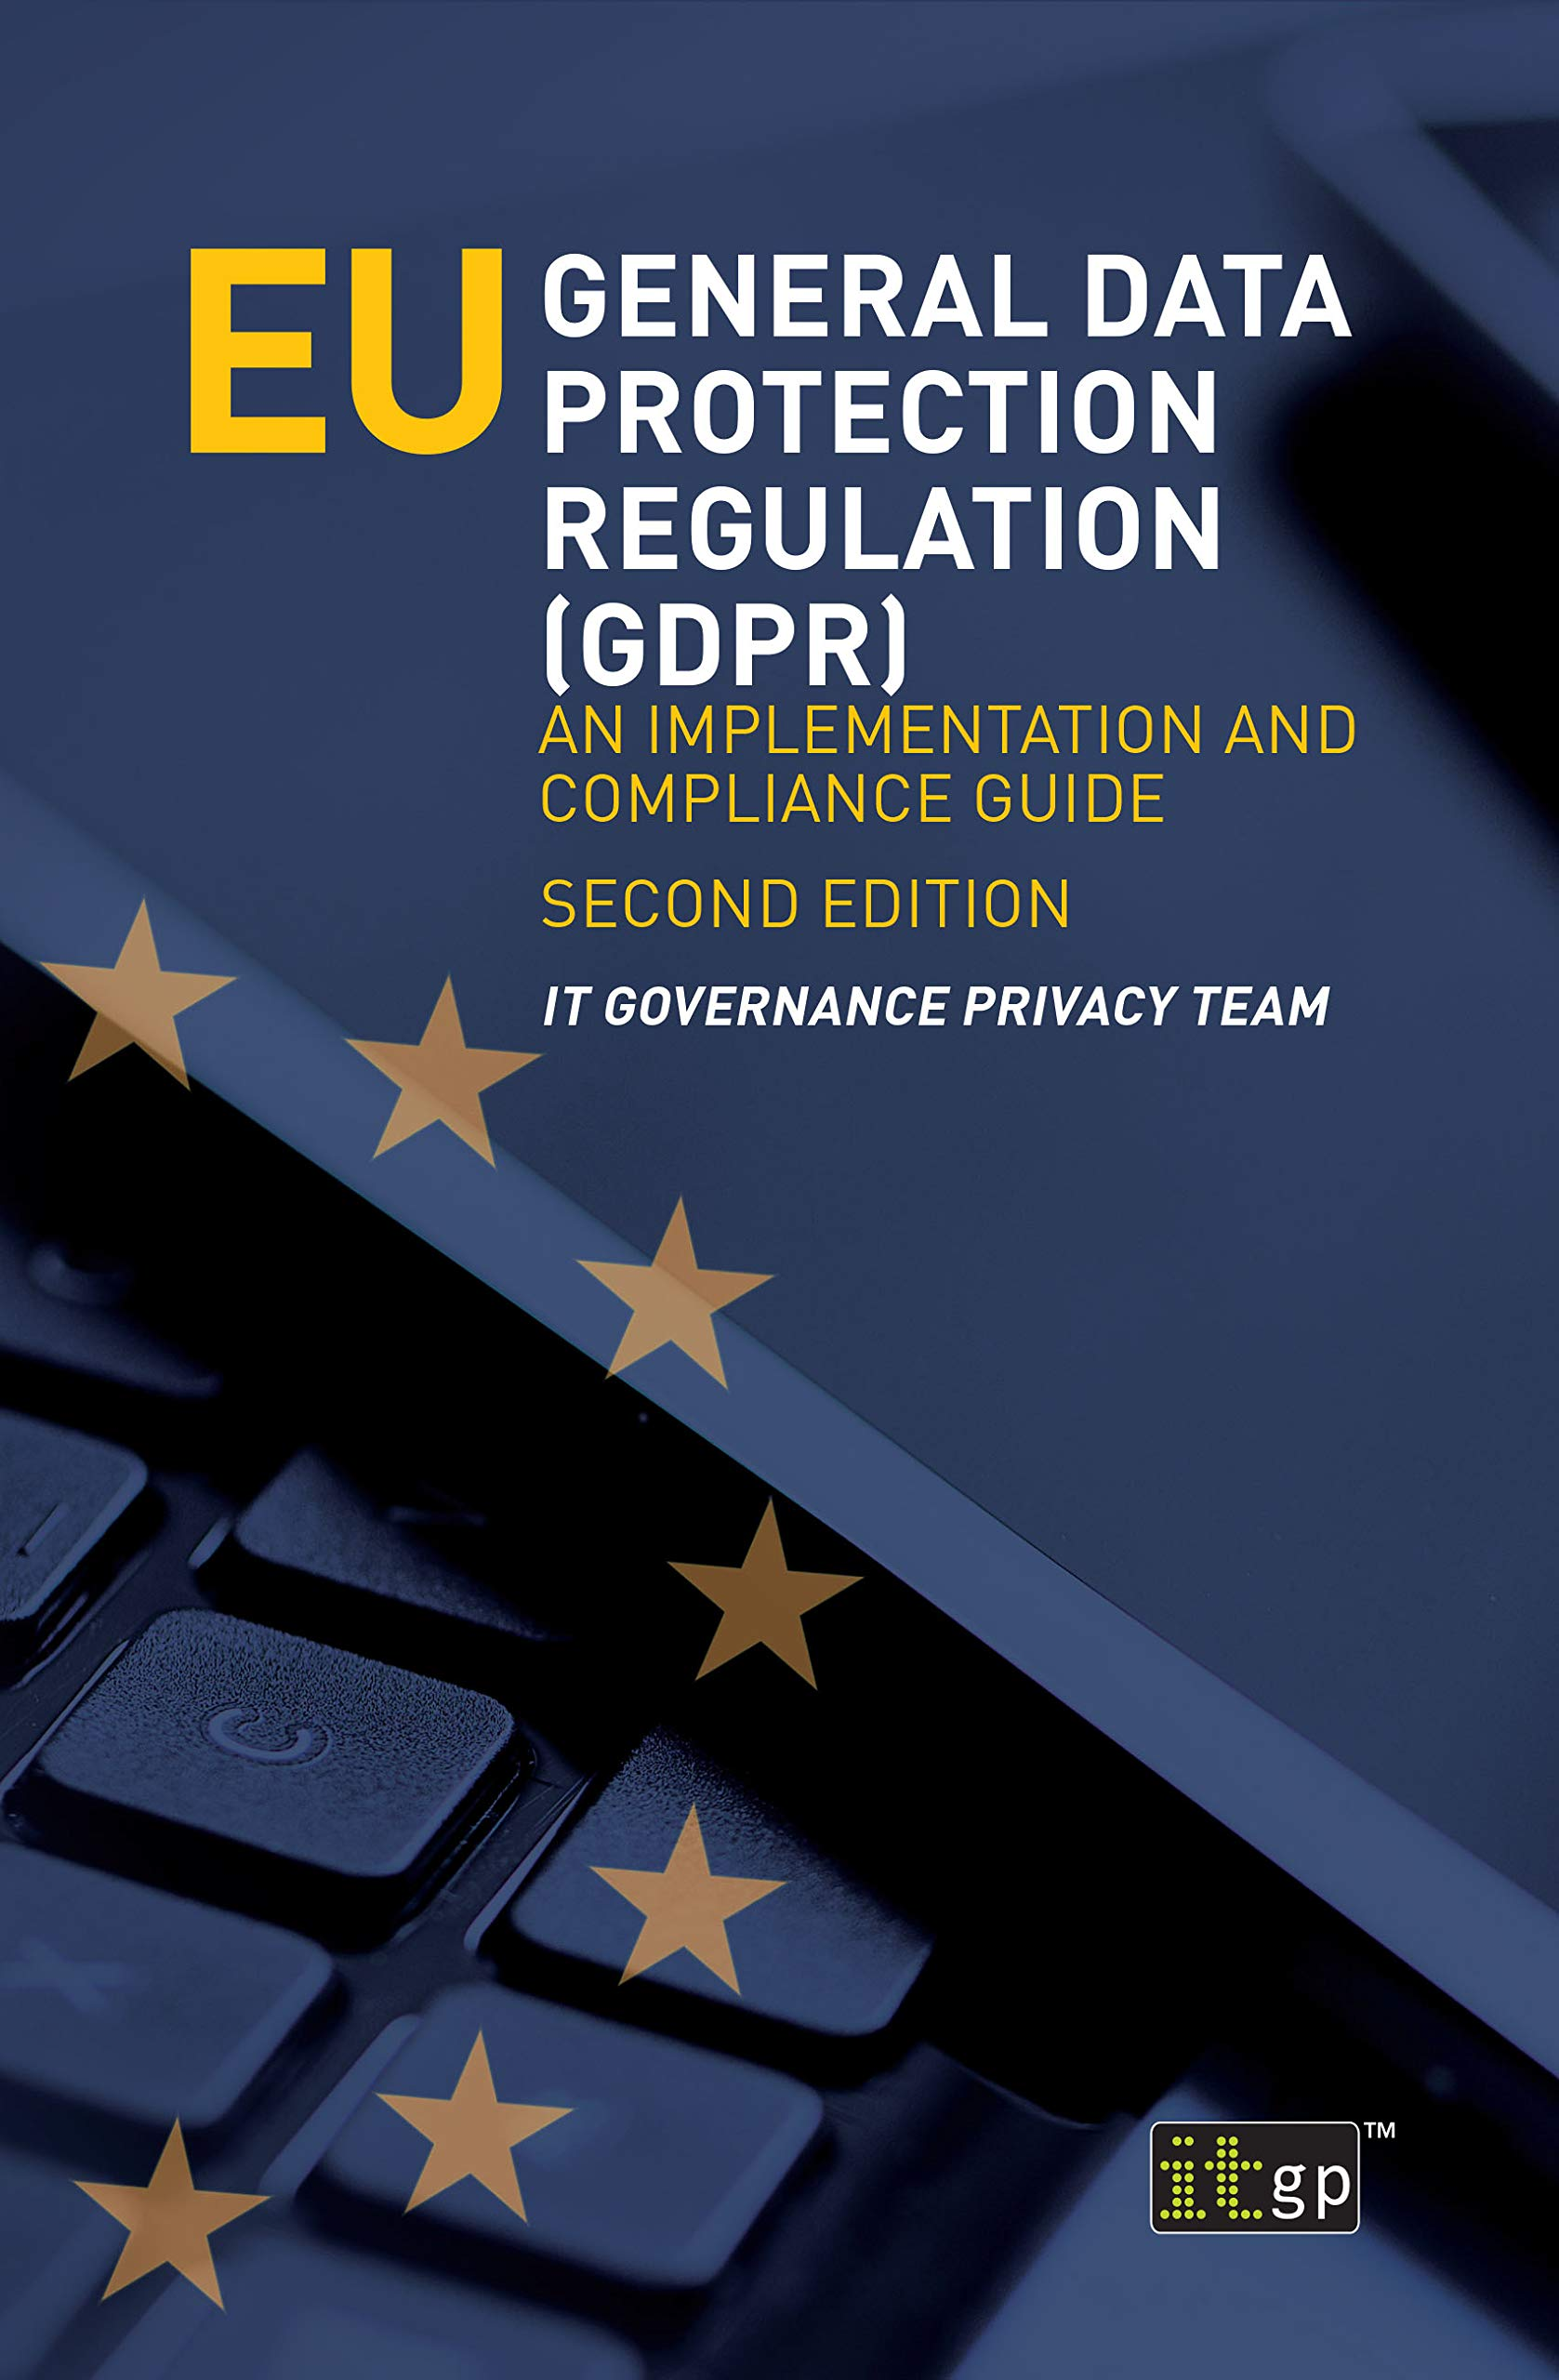 EU General Data Protection Regulation  GDPR   An Implementation And Compliance Guide   Second Edition  English Edition